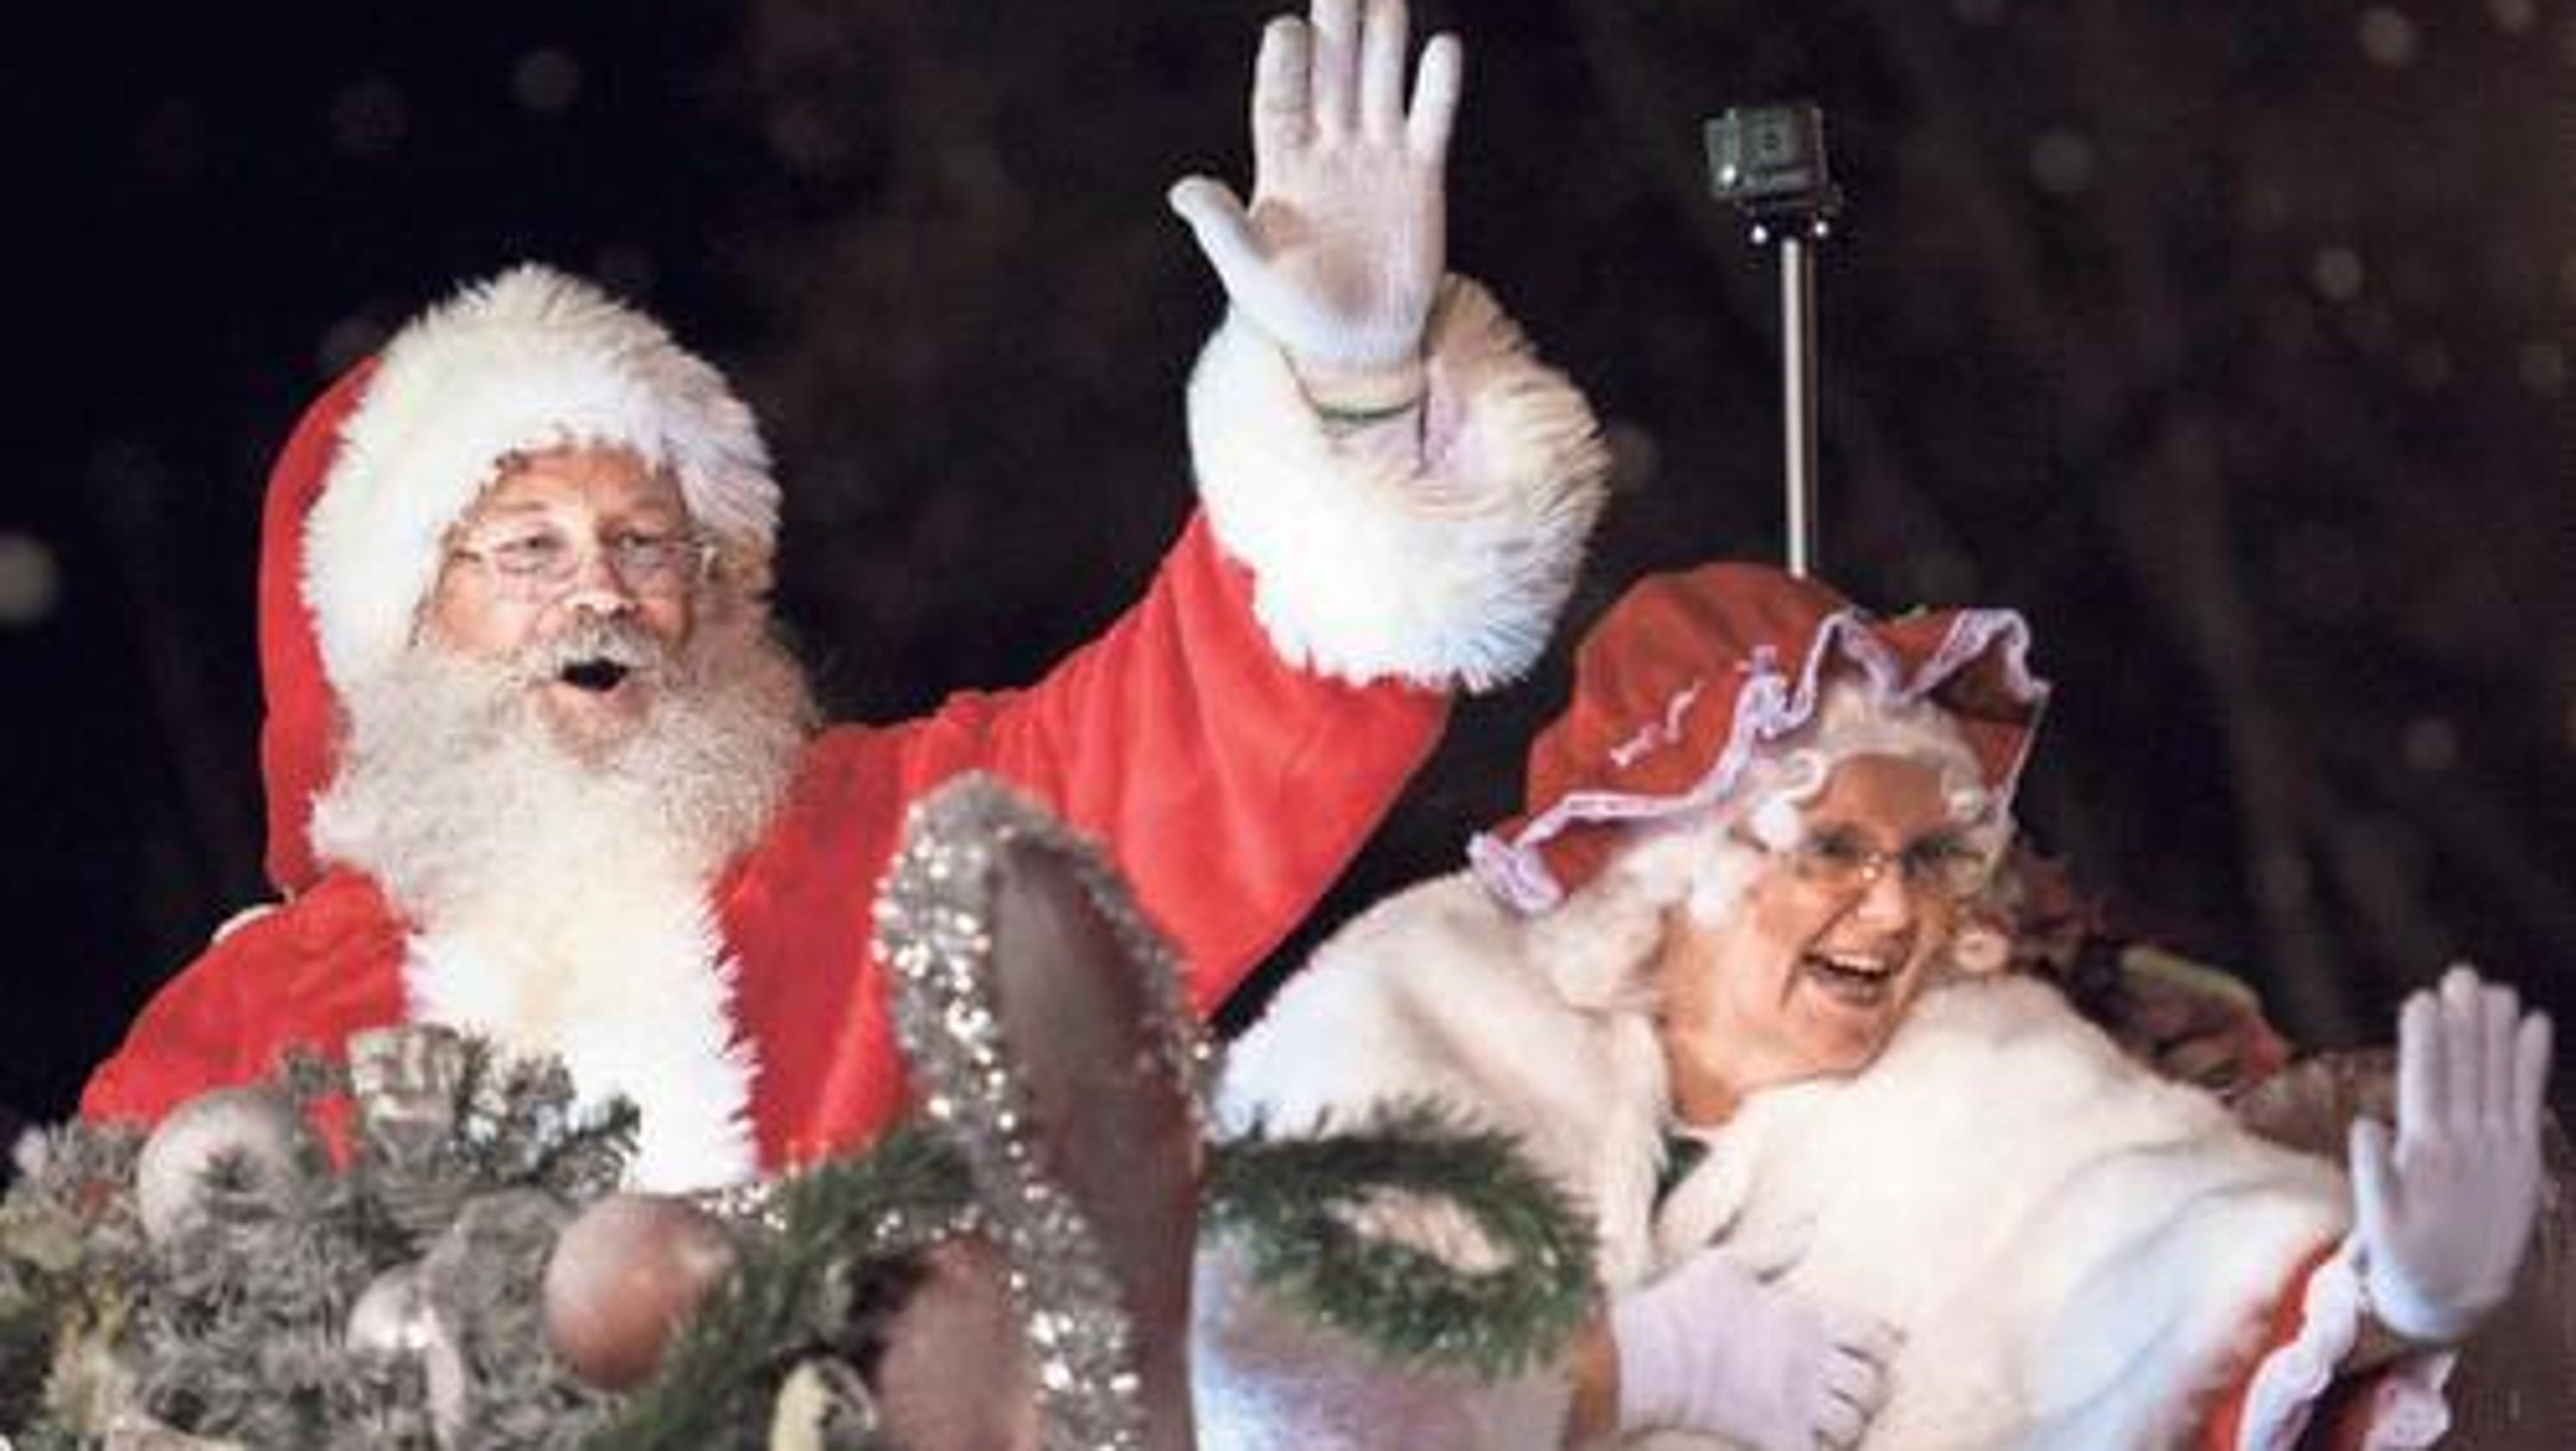 Belton Christmas Parade 2019 Here are some Christmas parades in Greenville and around the Upstate